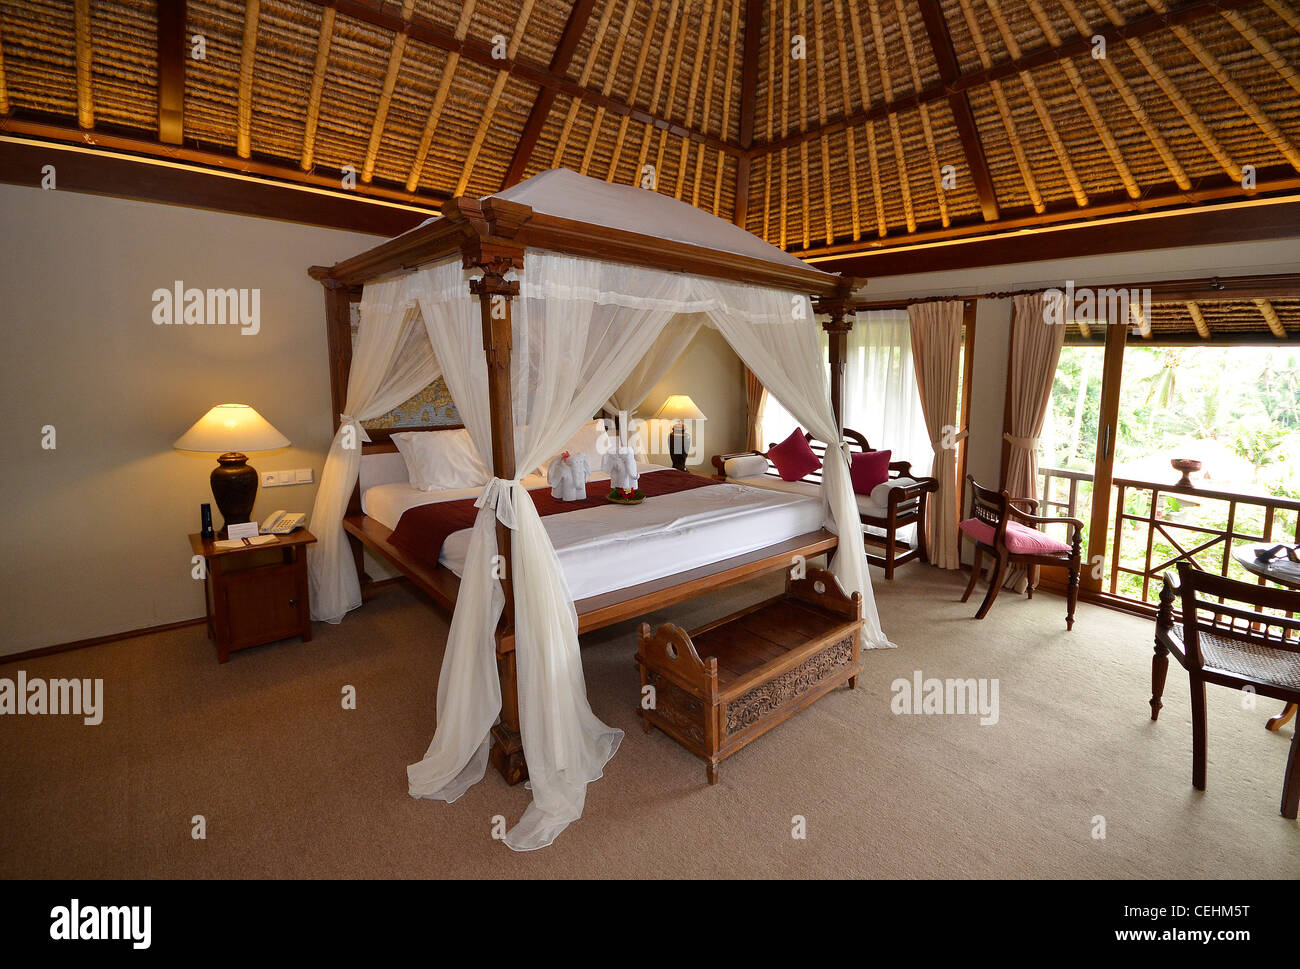 Bali Hotel Spa Bedroom With Four Poster Bed And Mosquito Nets Stock Photo Alamy